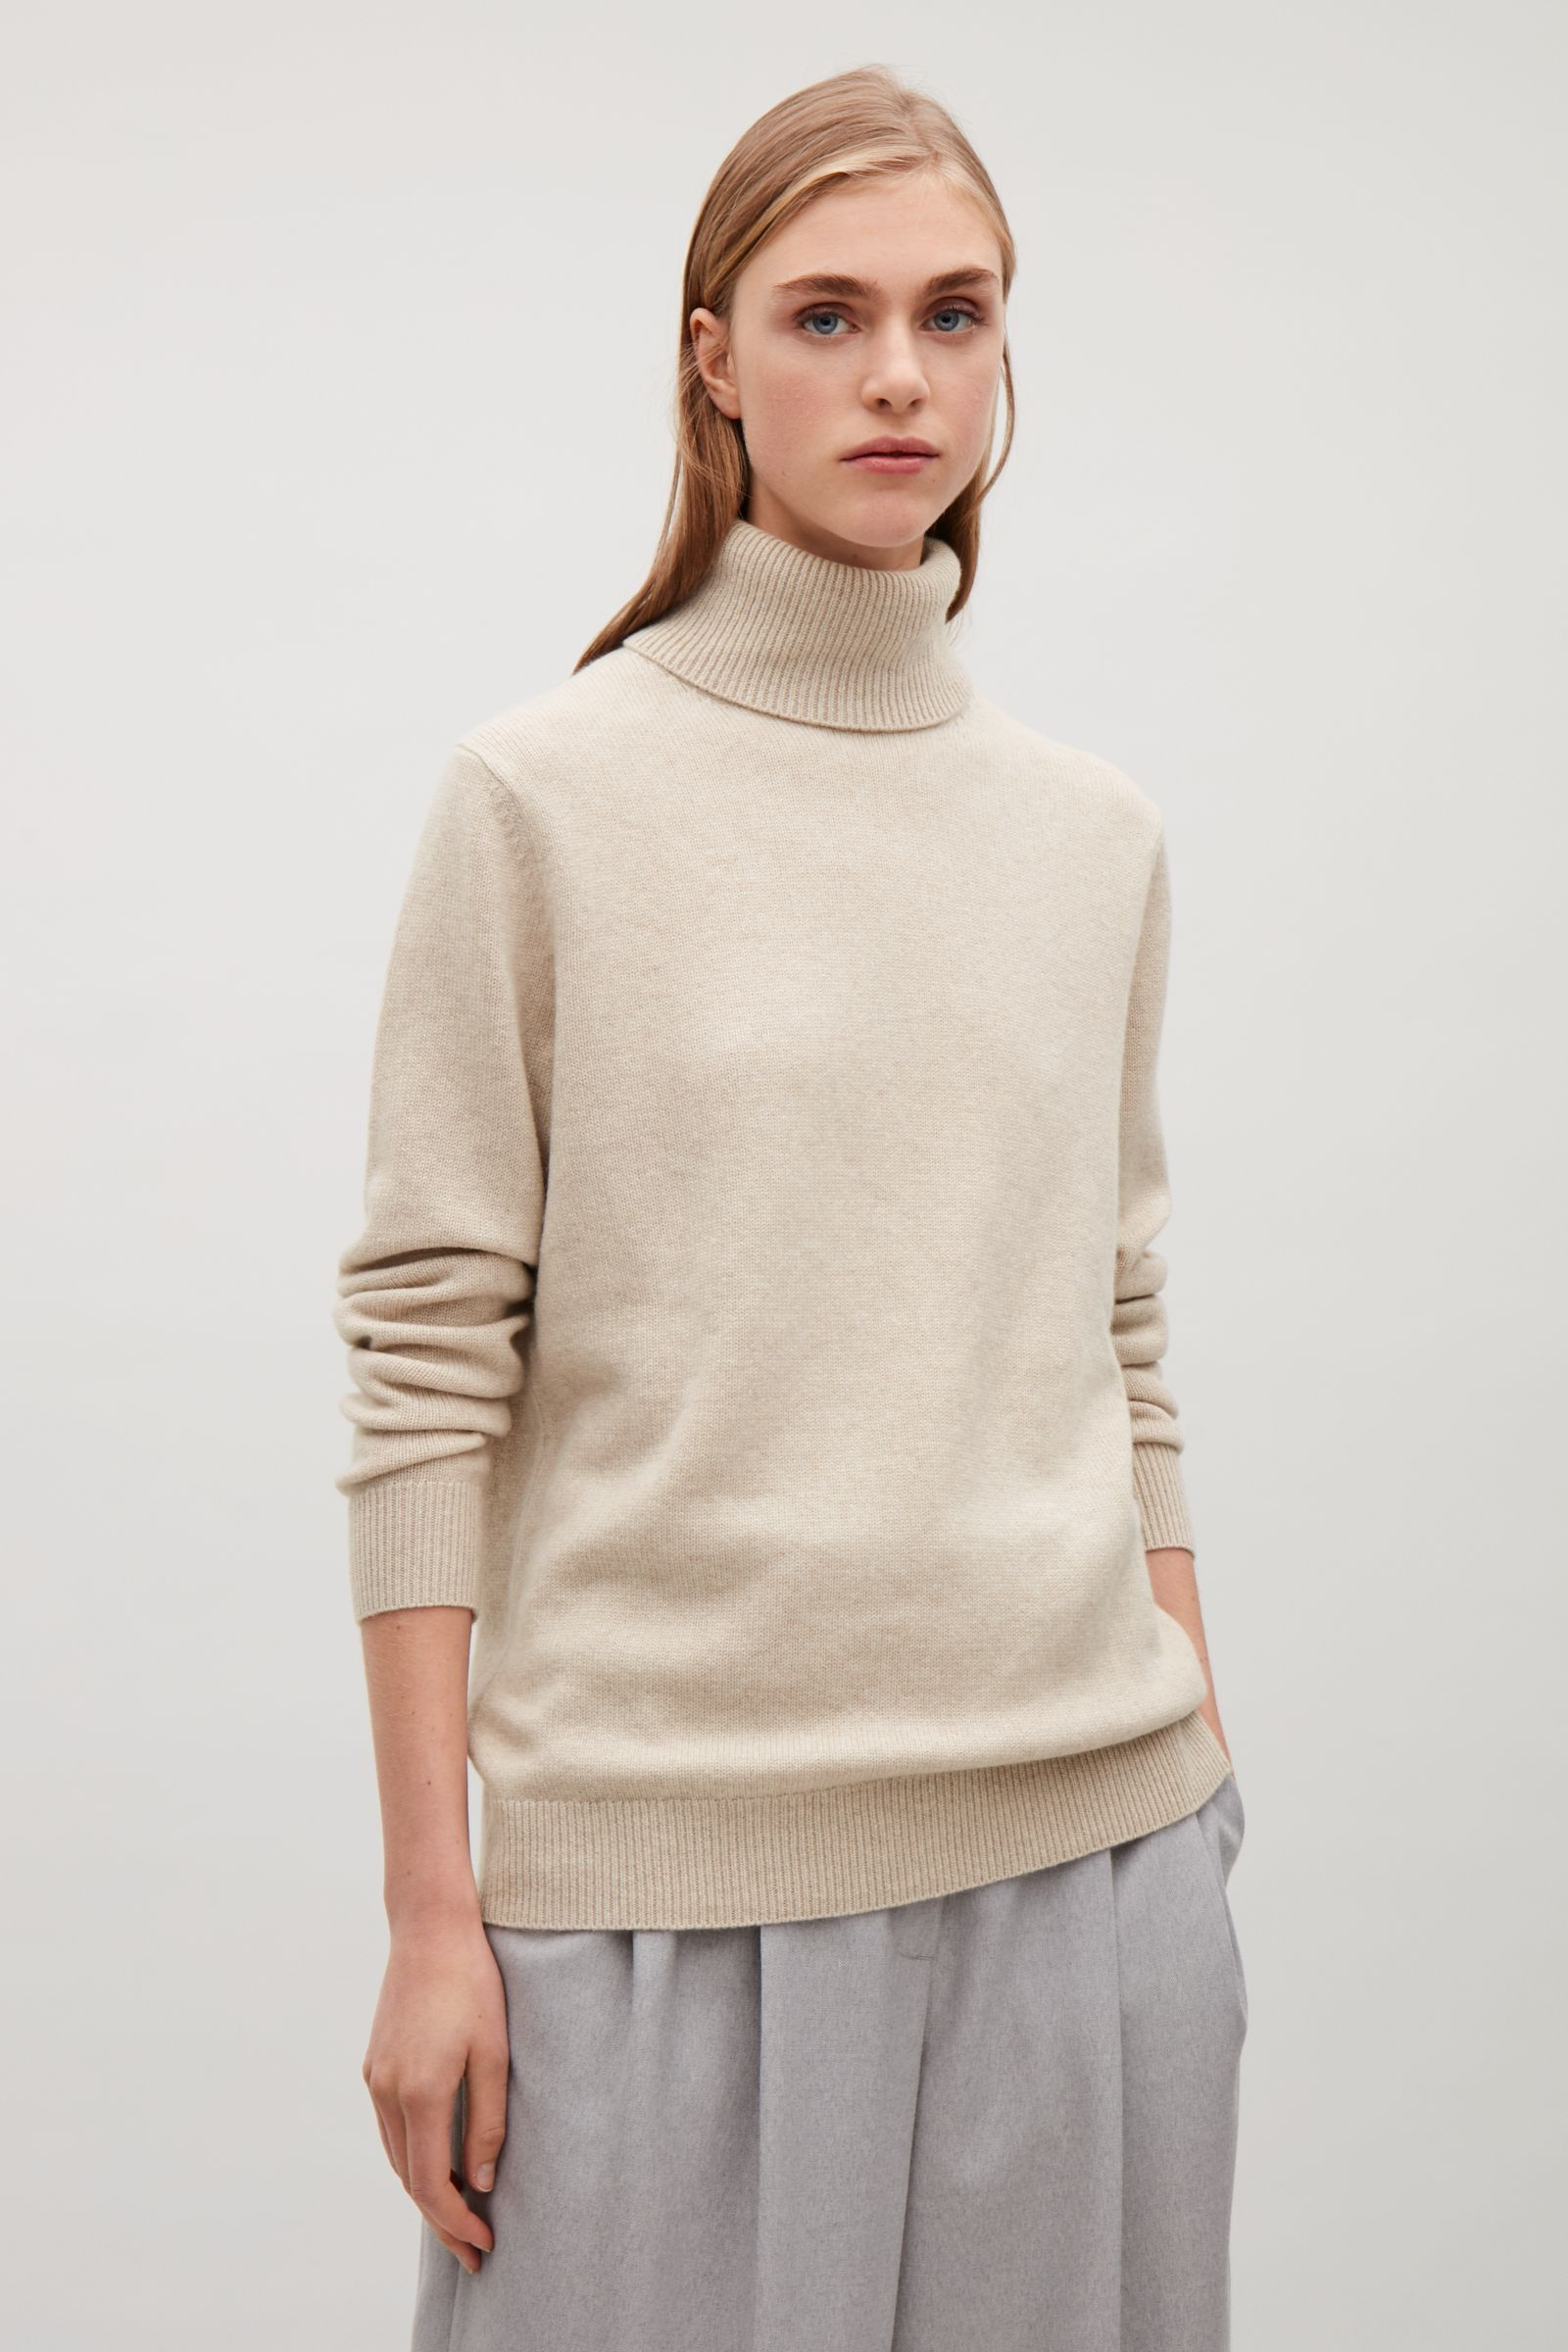 40fac0032656 COS image 9 of High-neck cashmere jumper in Sand | Outfit | Cashmere ...